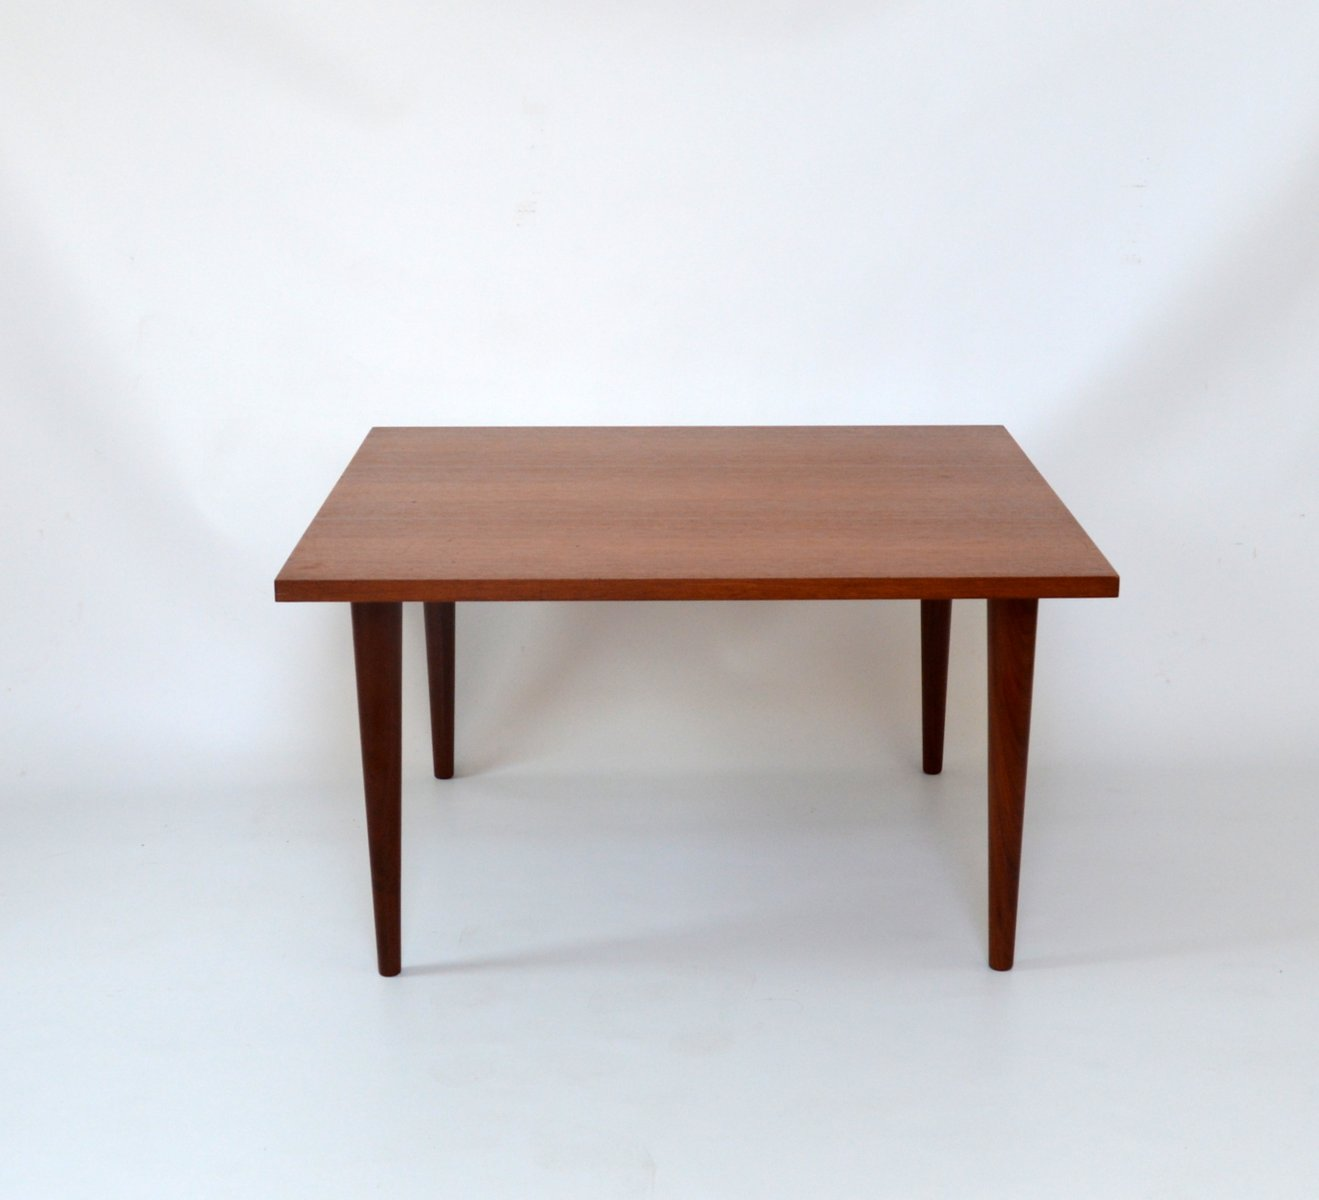 Old Teak Coffee Table: Vintage Swedish Teak Coffee Table, 1970s For Sale At Pamono